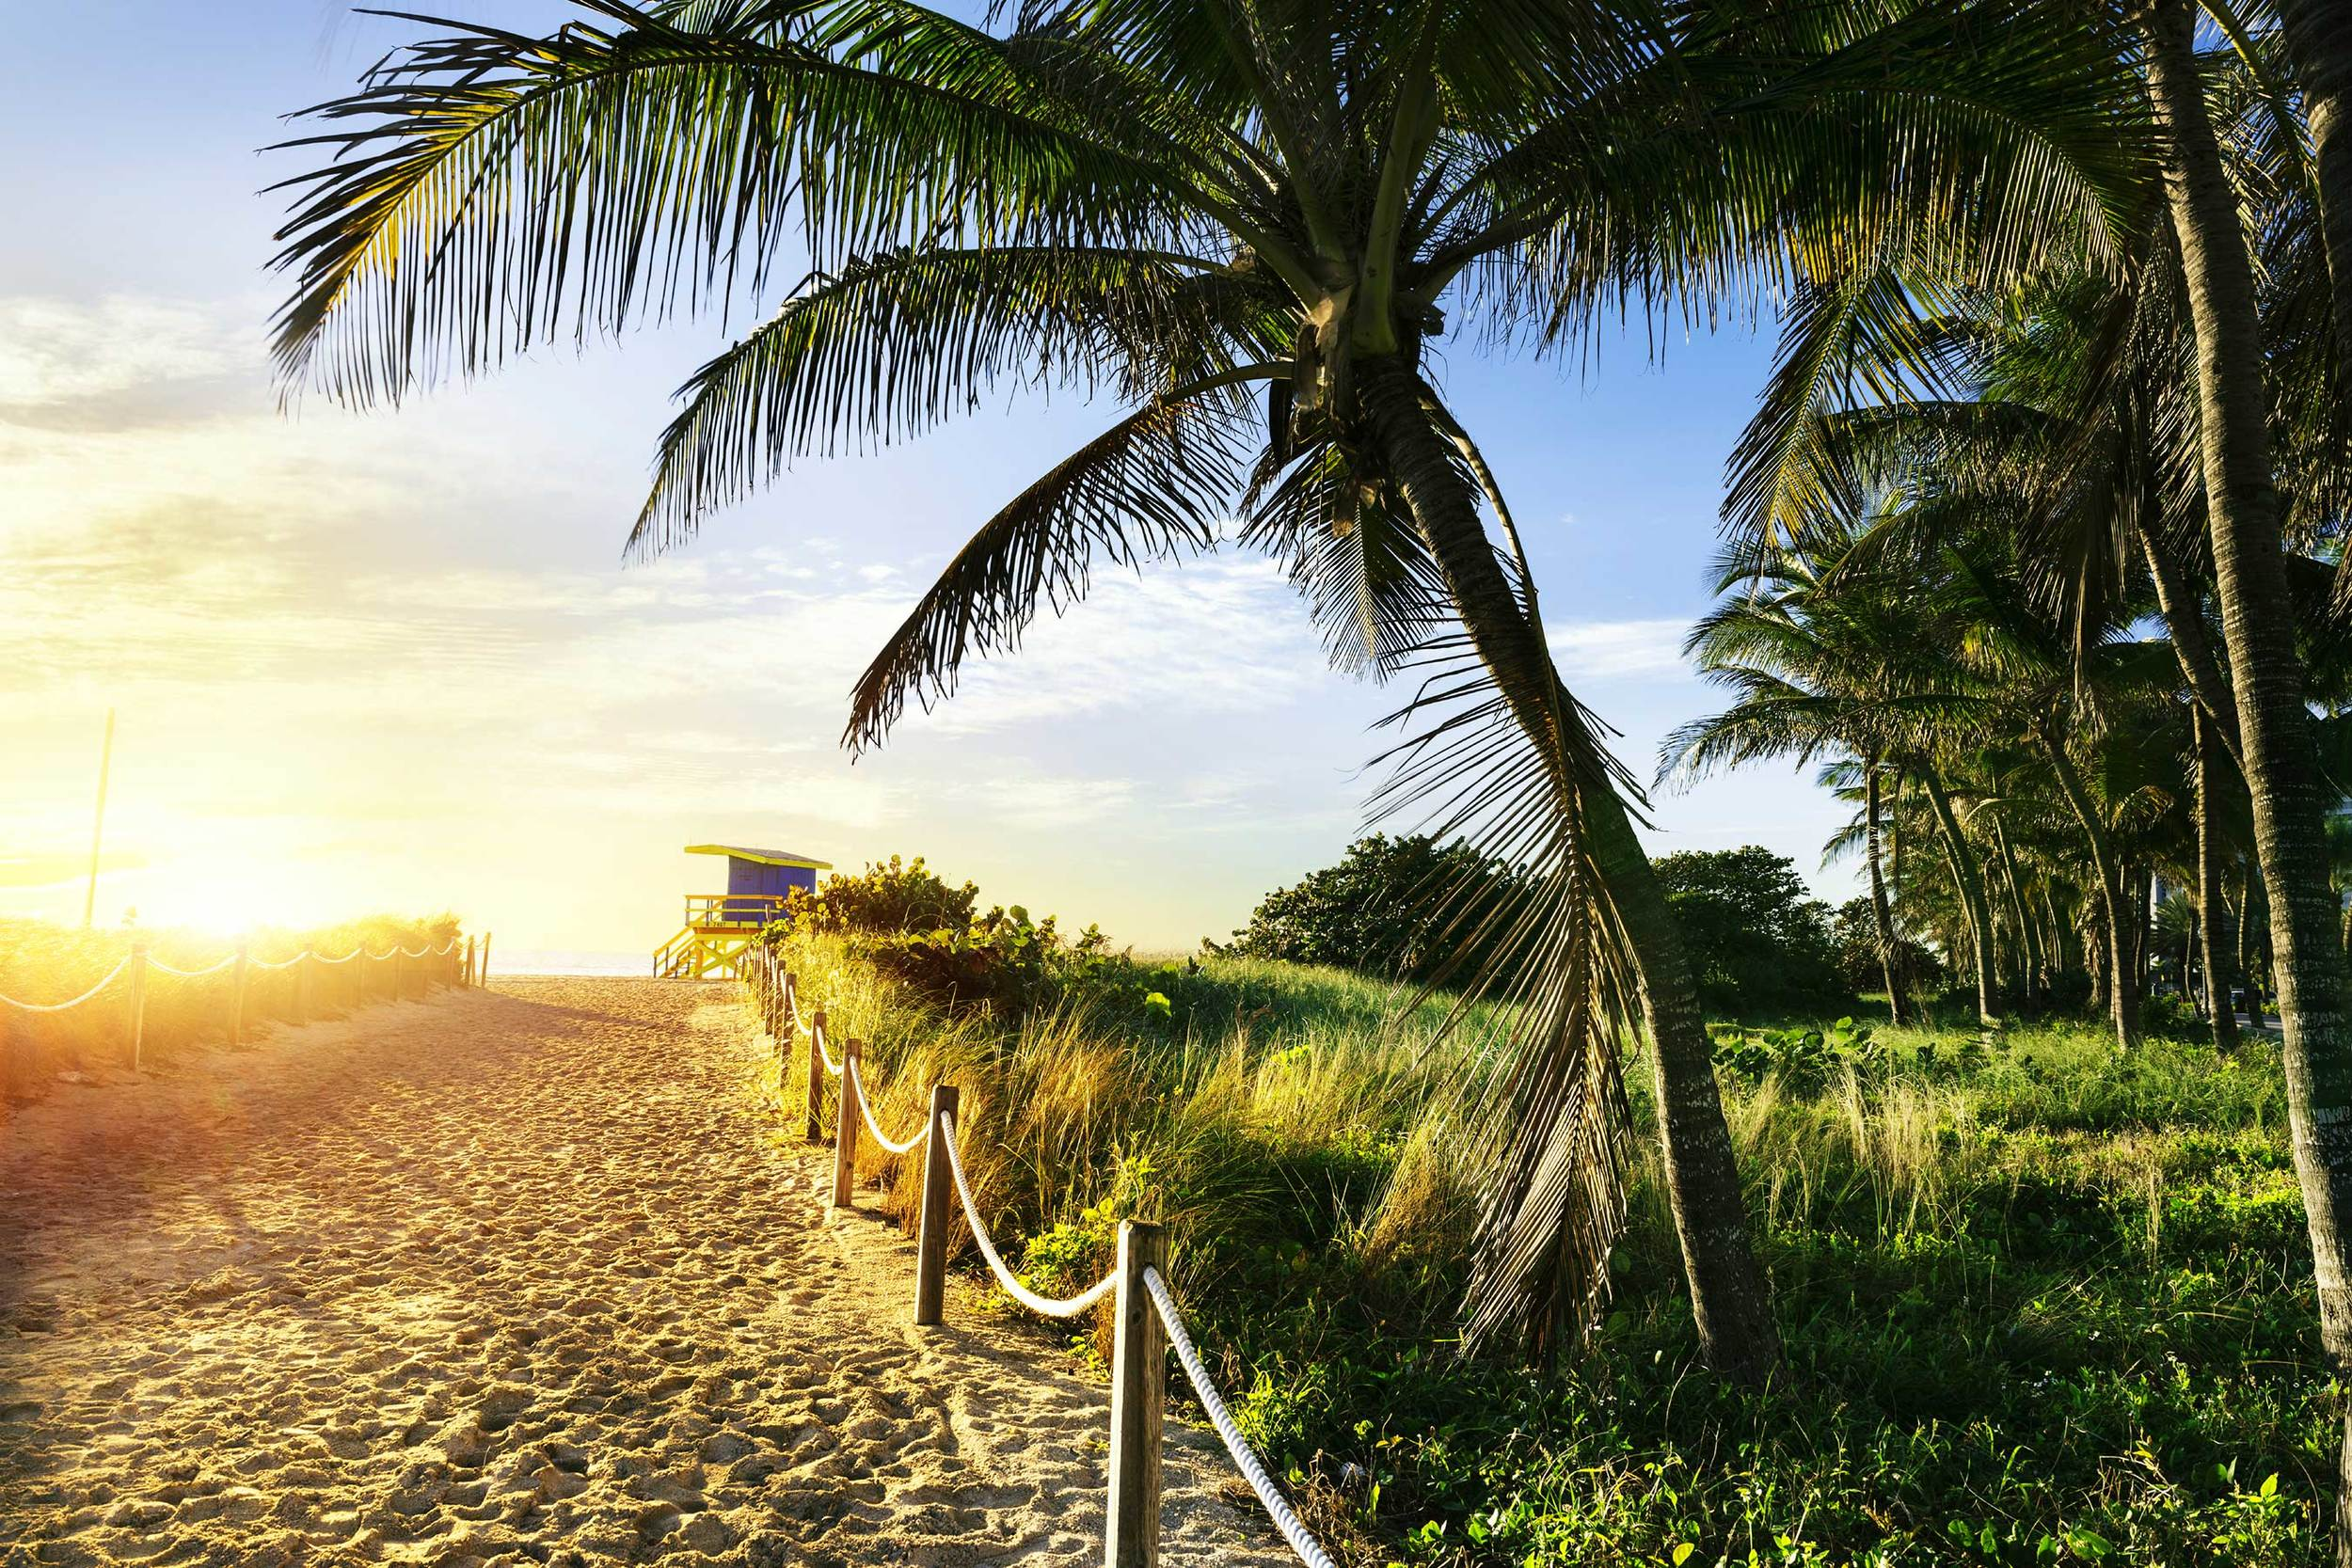 "<p>NEAR-AWAY<strong>Are you a Florida resident? Escape the hassle of everyday life but stay close to home.</strong><a href=""/near"">MORE</a></p>"